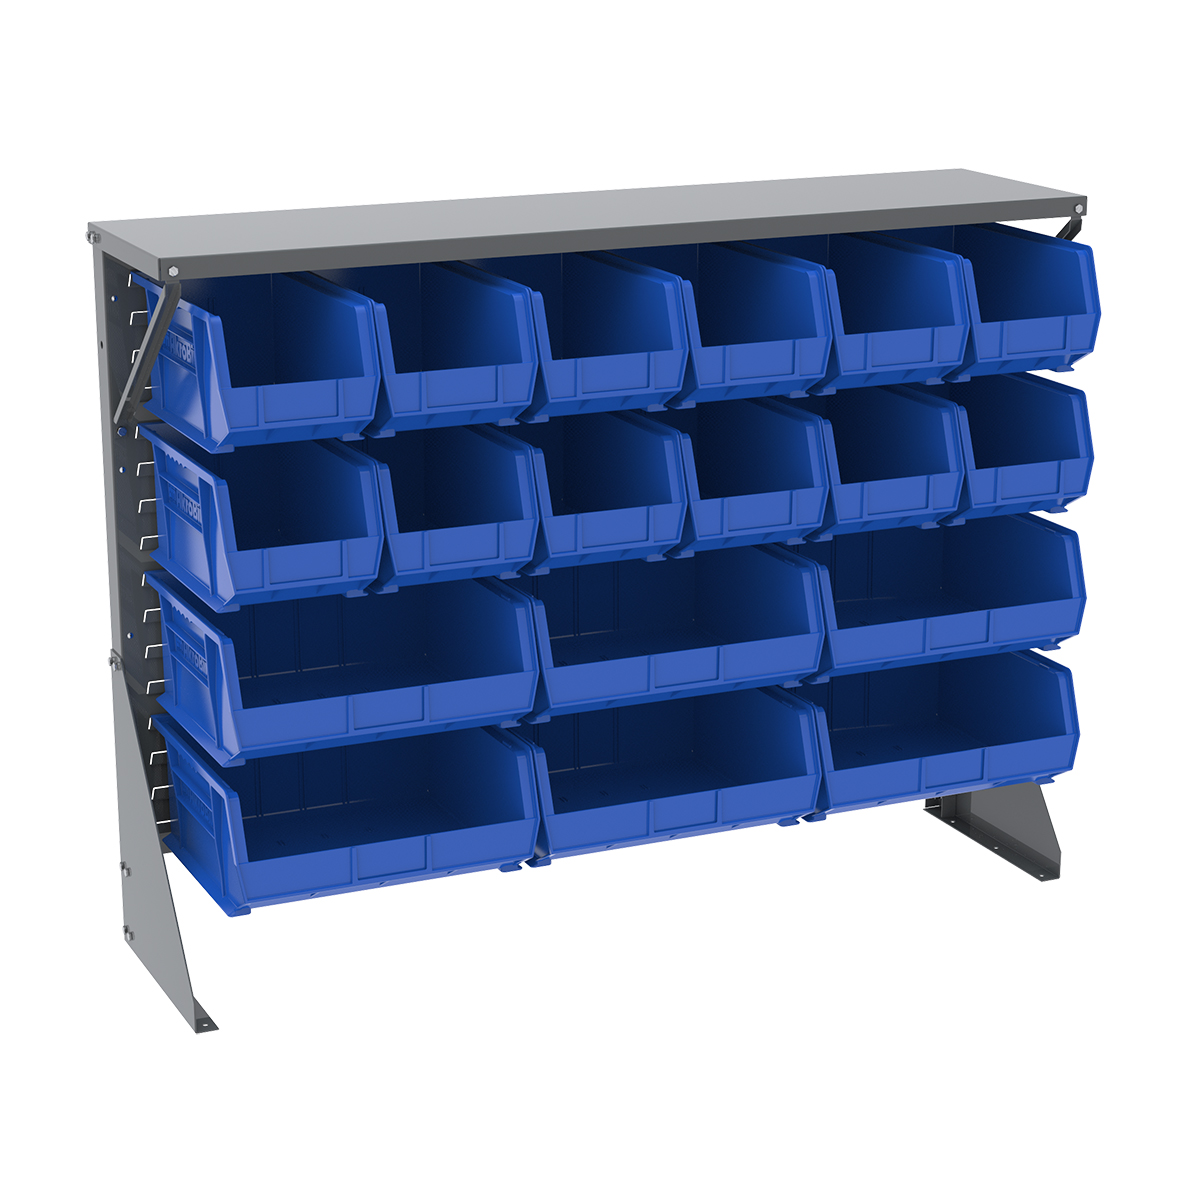 Item DISCONTINUED by Manufacturer.  Low Profile Floor Rack, 1-Sided, Shelf w/ 18 AkroBins, Gray/Blue (30650GYASSTB).  This item sold in carton quantities of 1.